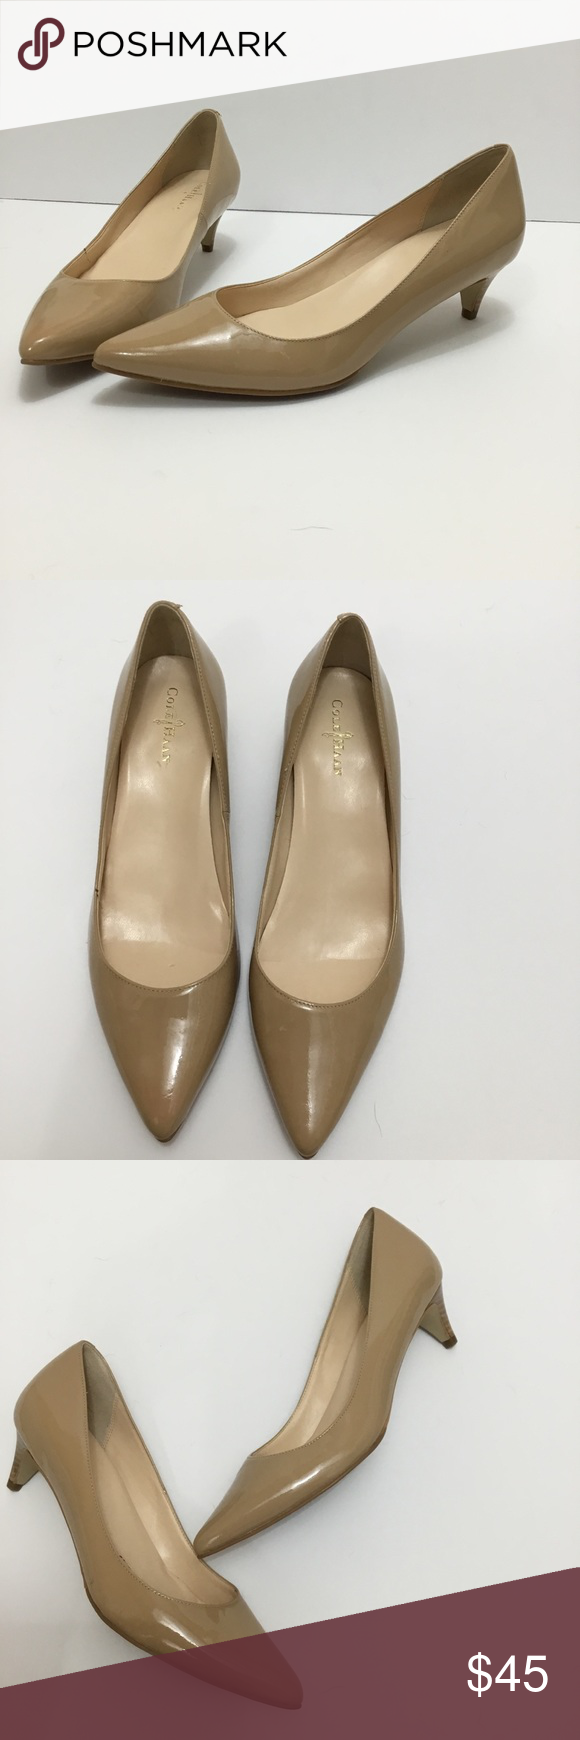 790cff09ddf Cole Haan || NEW nike air shiny nude kitten heels Cole haan x Nike ...